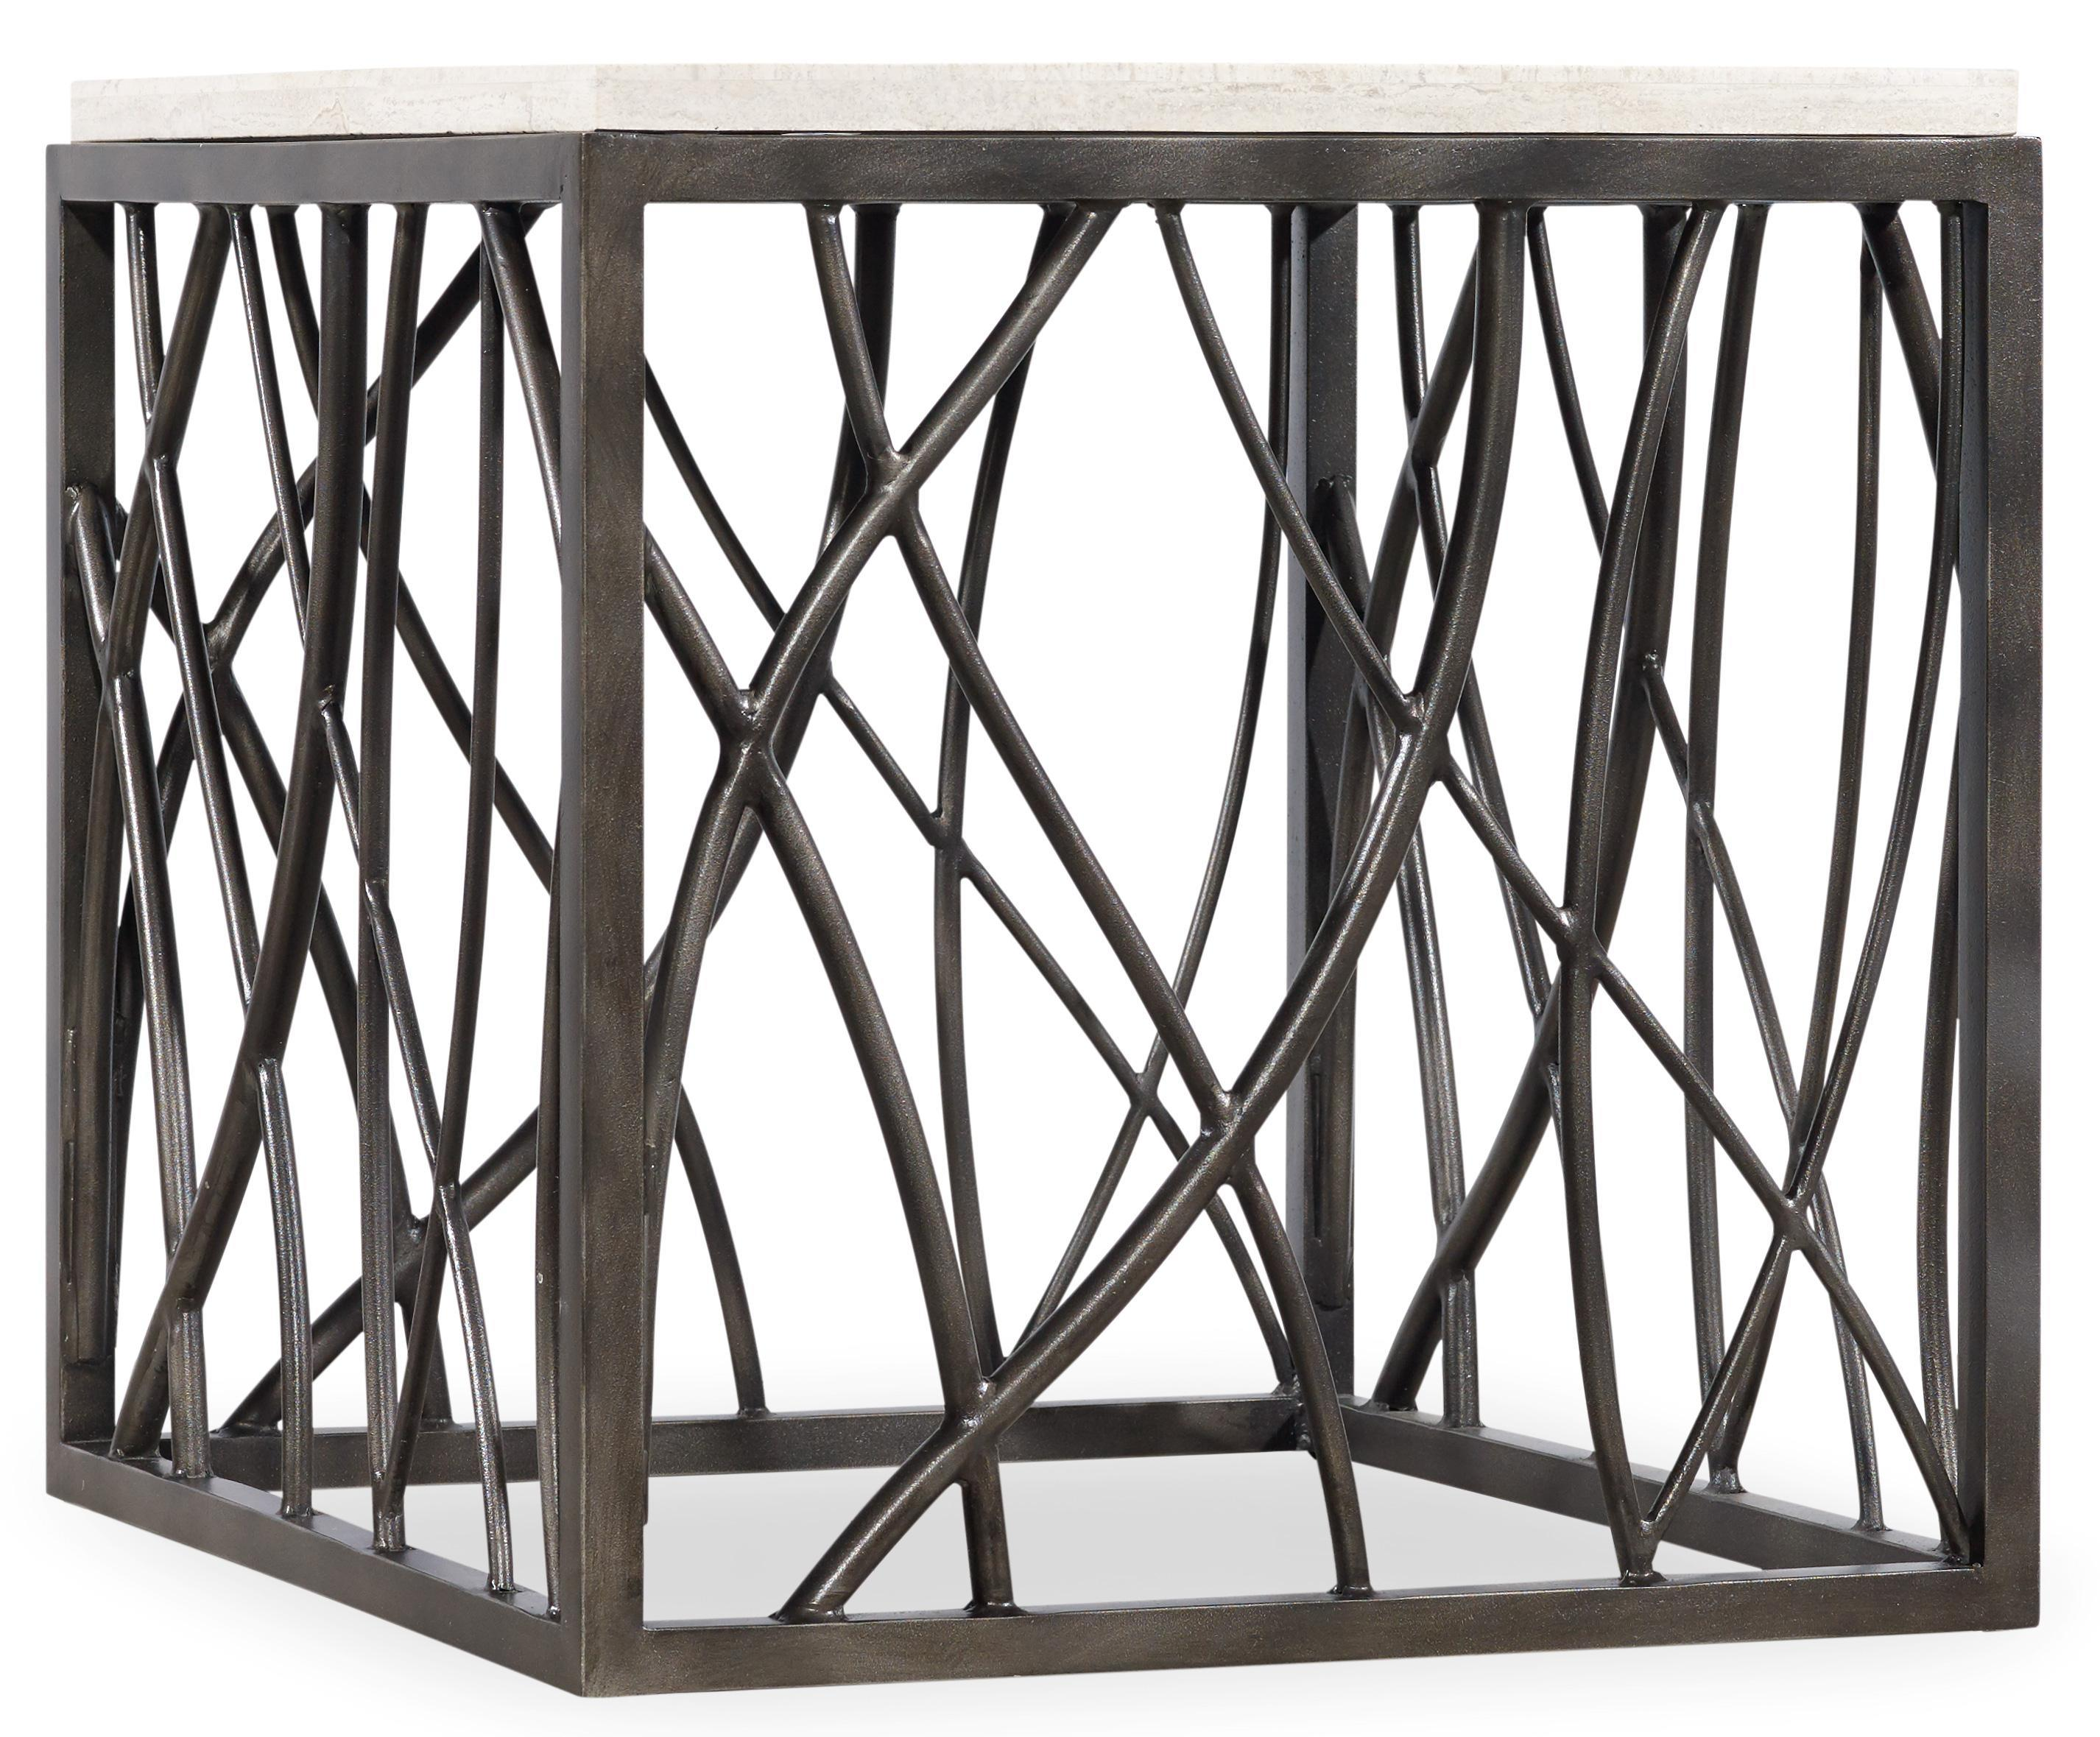 Living Room Accents End Table at Williams & Kay